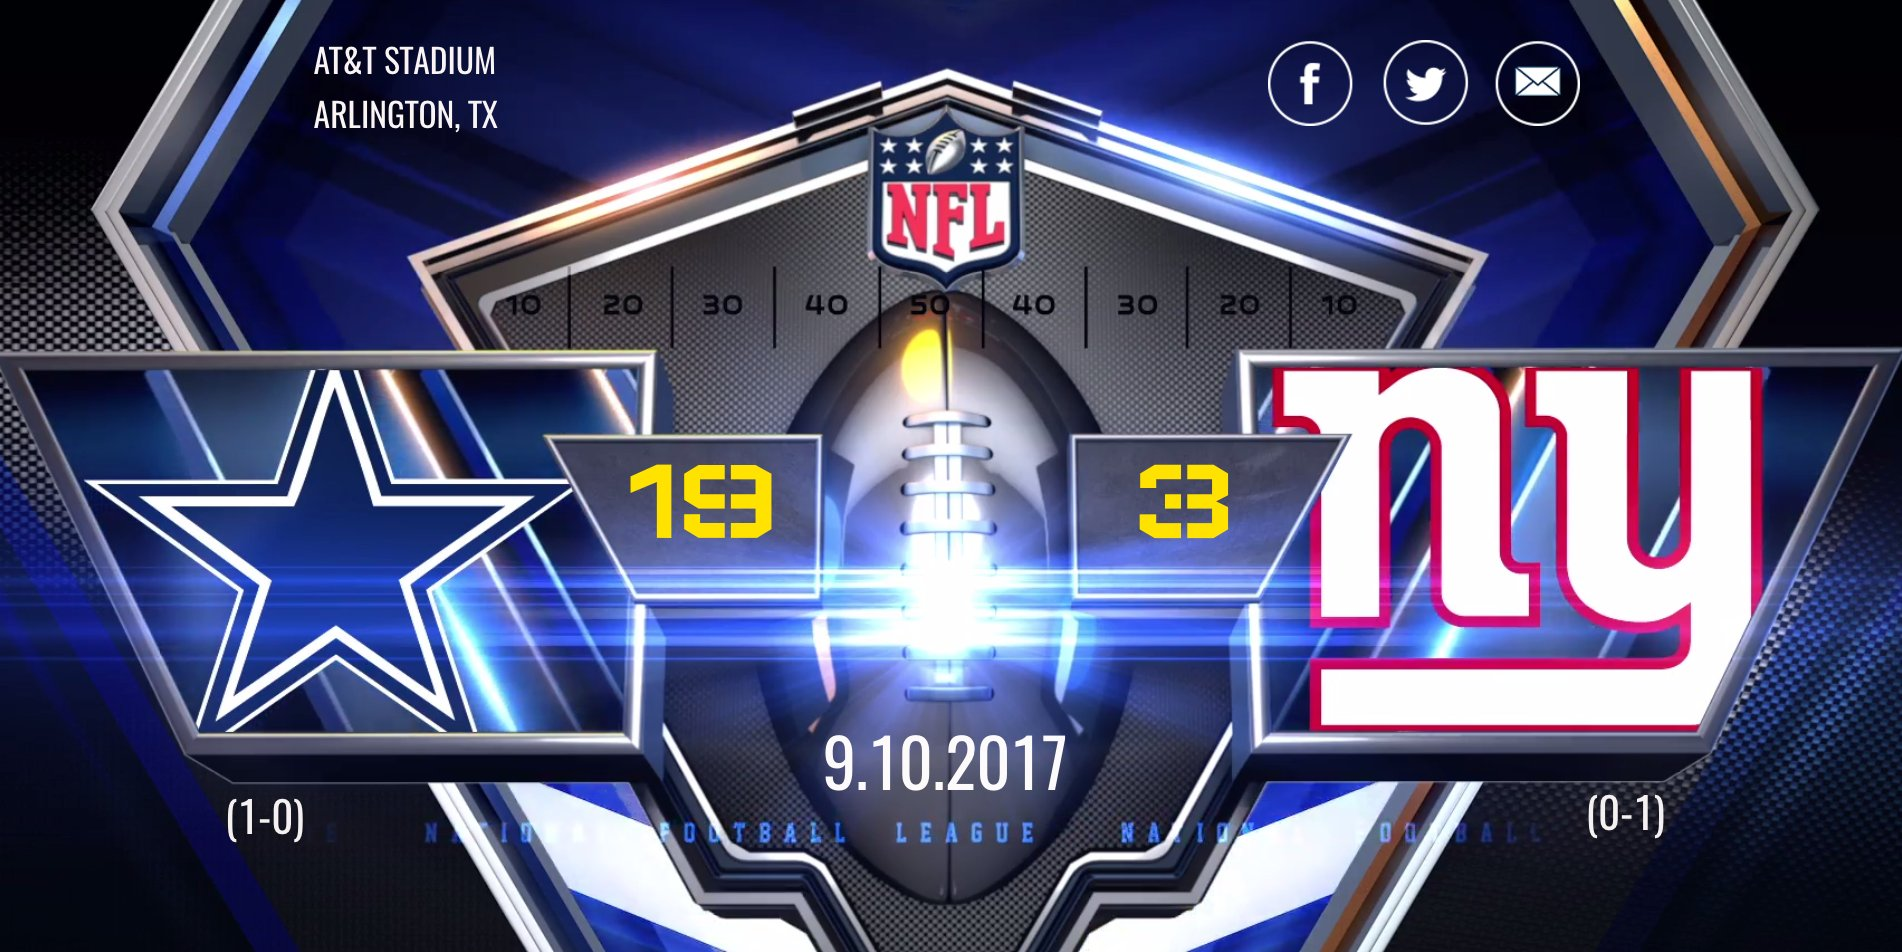 Take a look back at all of the contributing assets to the Cowboys win over the Giants.   ��: https://t.co/oXGsAe1qFJ https://t.co/VmWjpKW3Rp